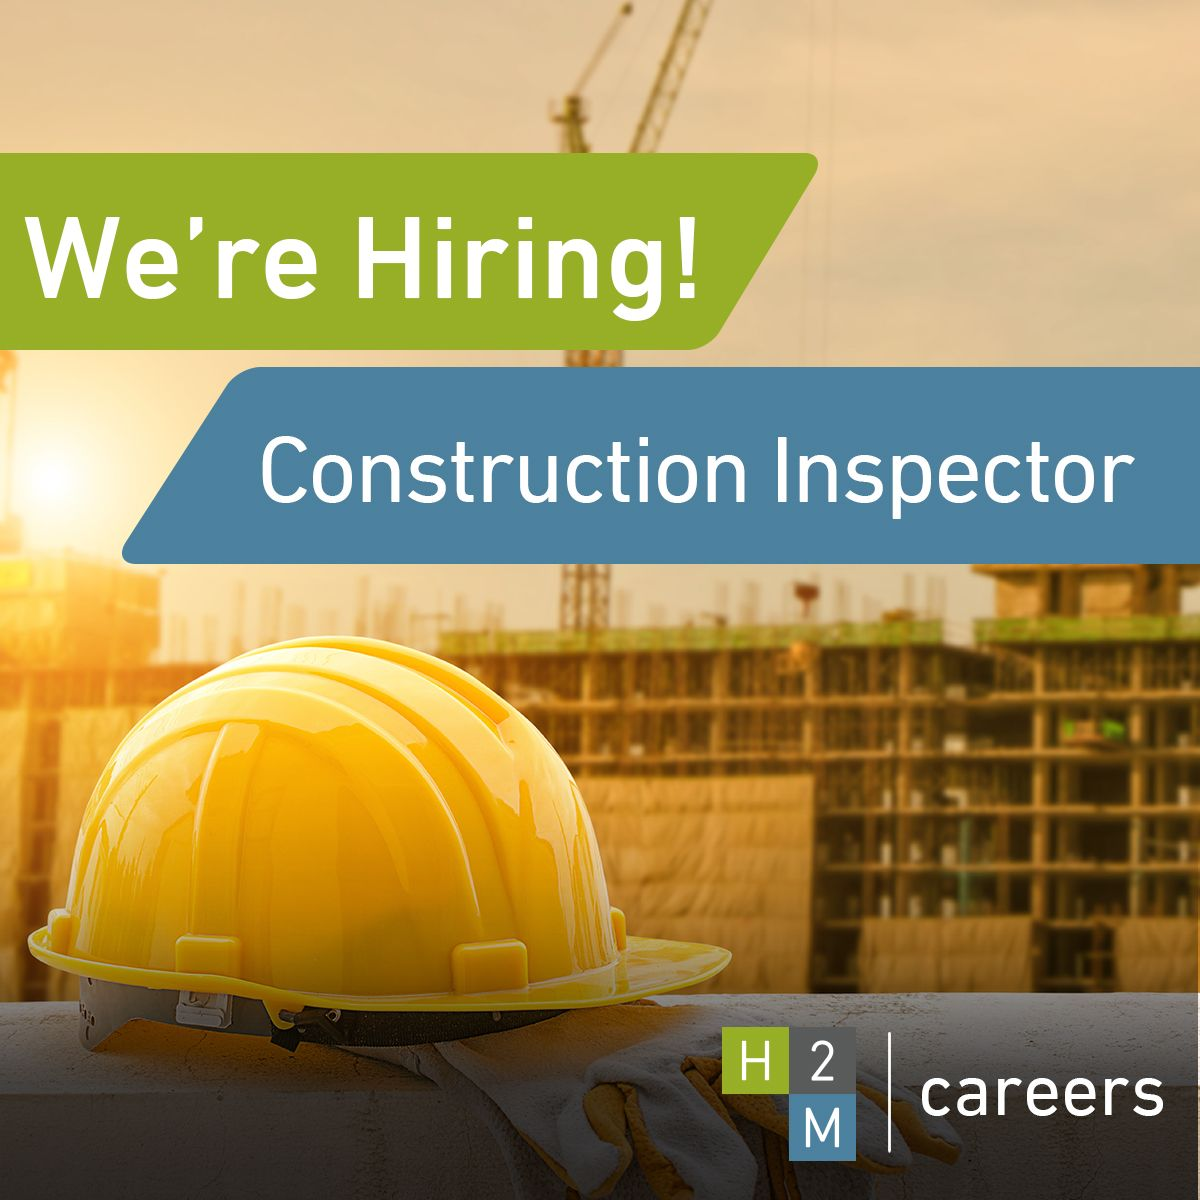 We Re Seeking A Pseg Construction Inspector With 5 Years Of Experience In Melville Ny Job Description Job Opening Construction Jobs Career Opportunities